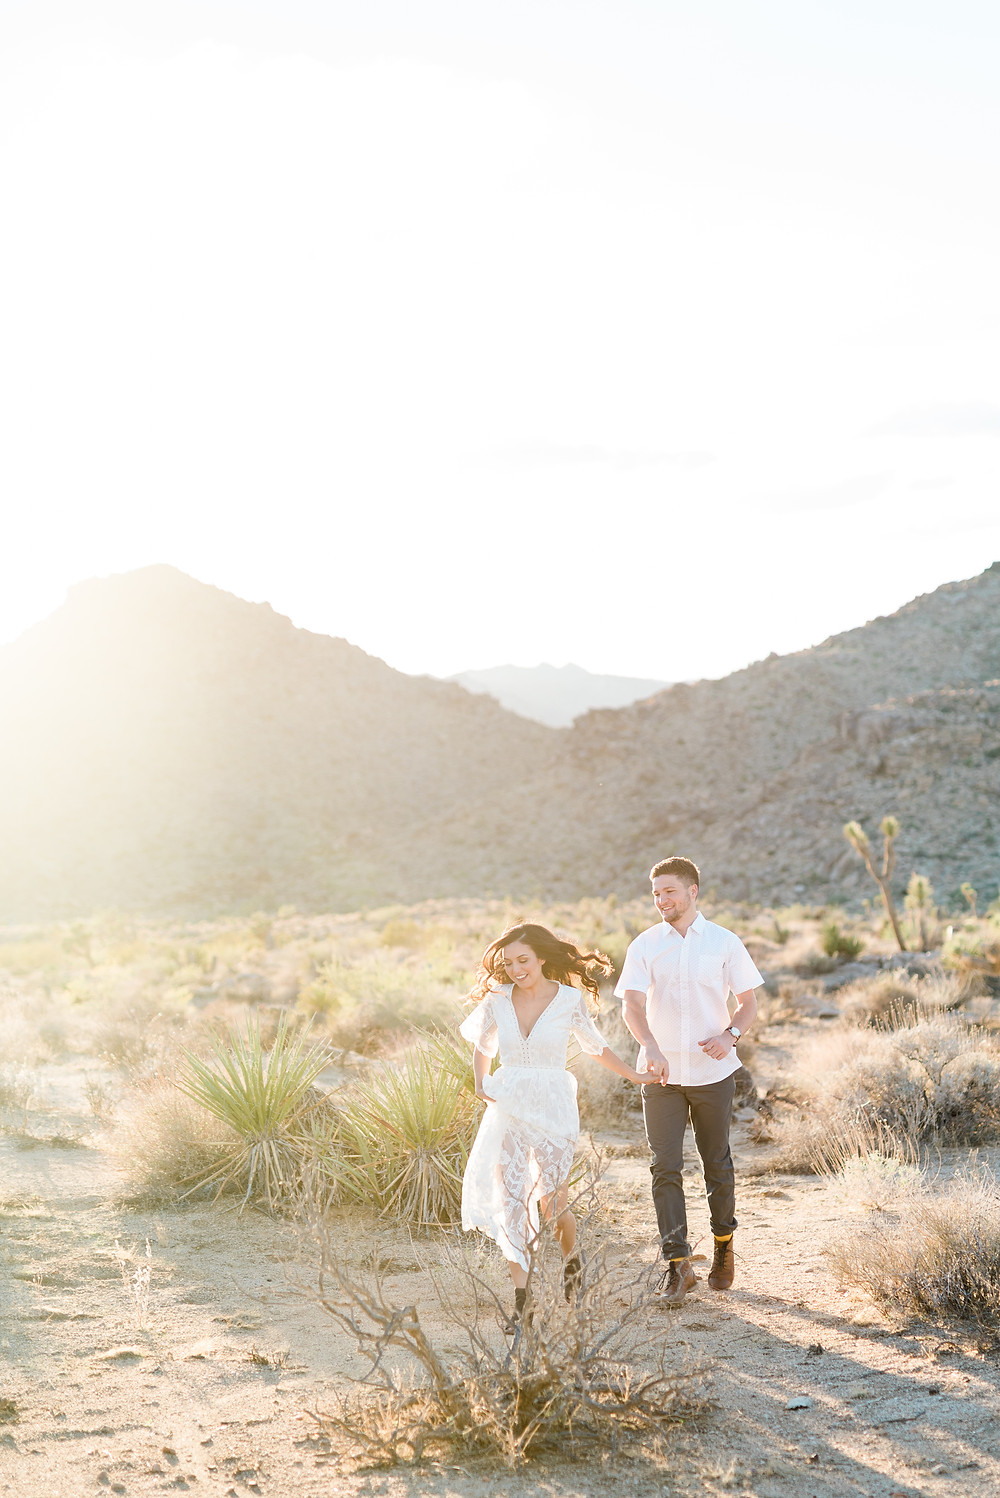 Romantic and Beautiful Joshua Tree Engagement Photos - Corona wedding and portrait photographer